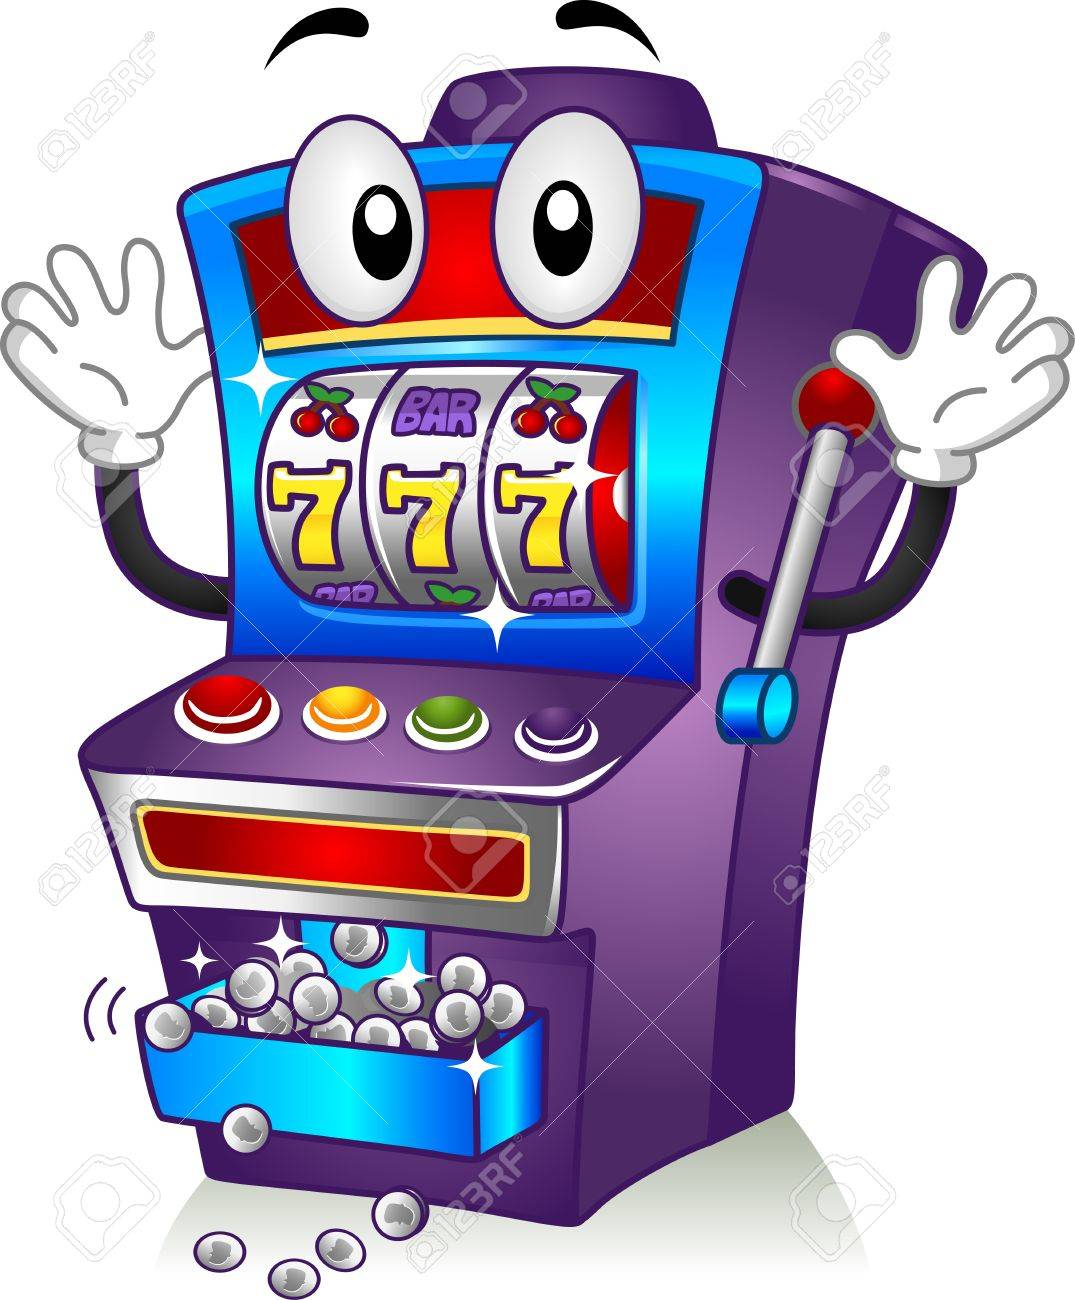 Slot Machine Jackpot Cartoon Pics